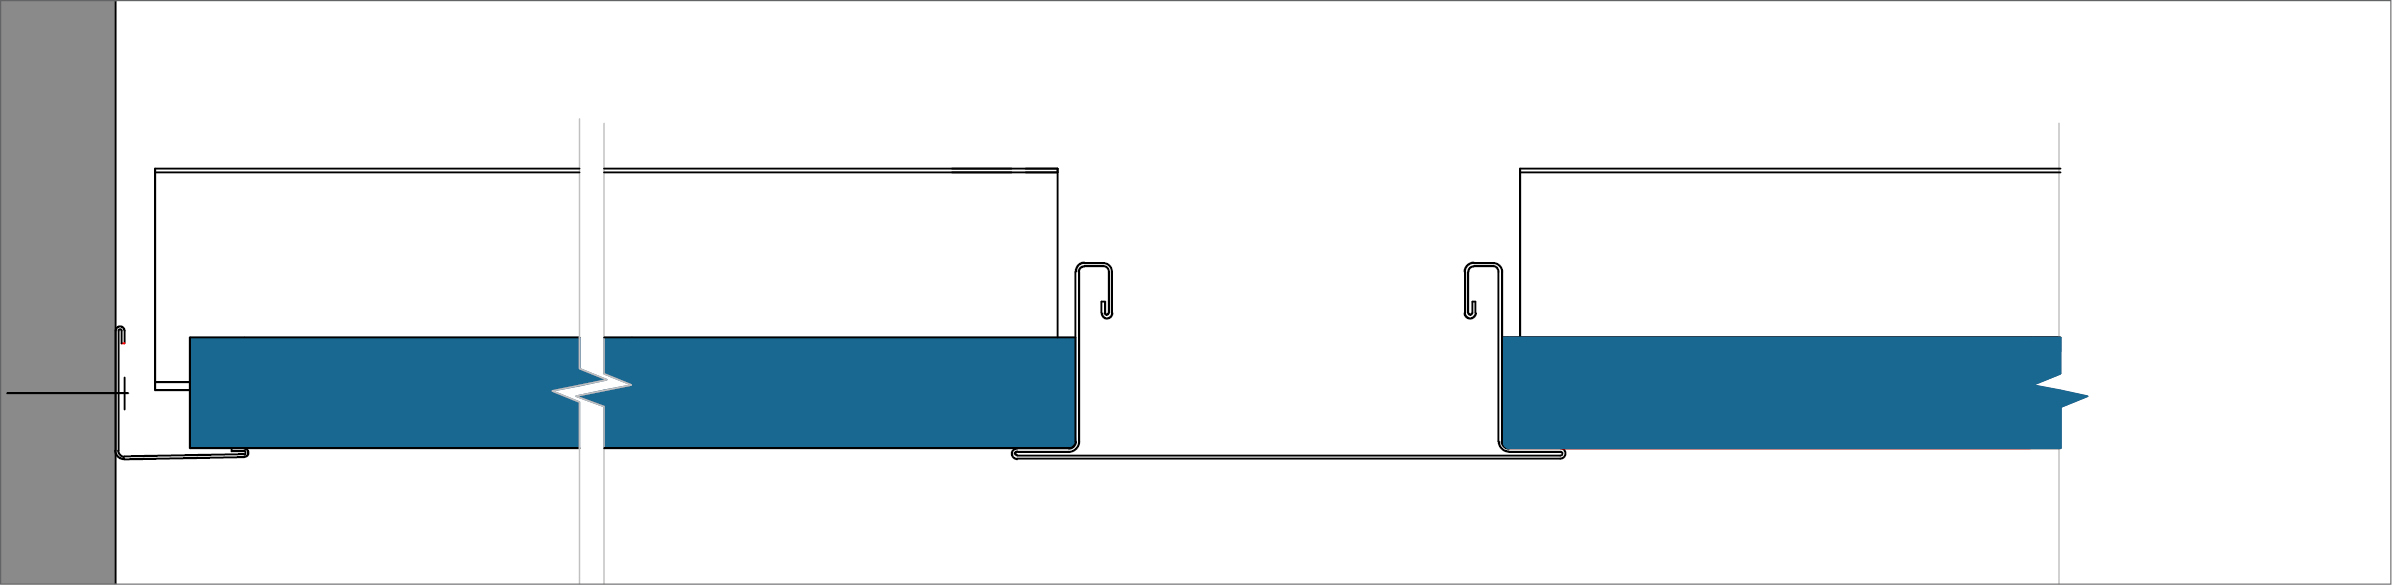 Bandraster Dznl-AEX - Perimeter finish with wall angle trim